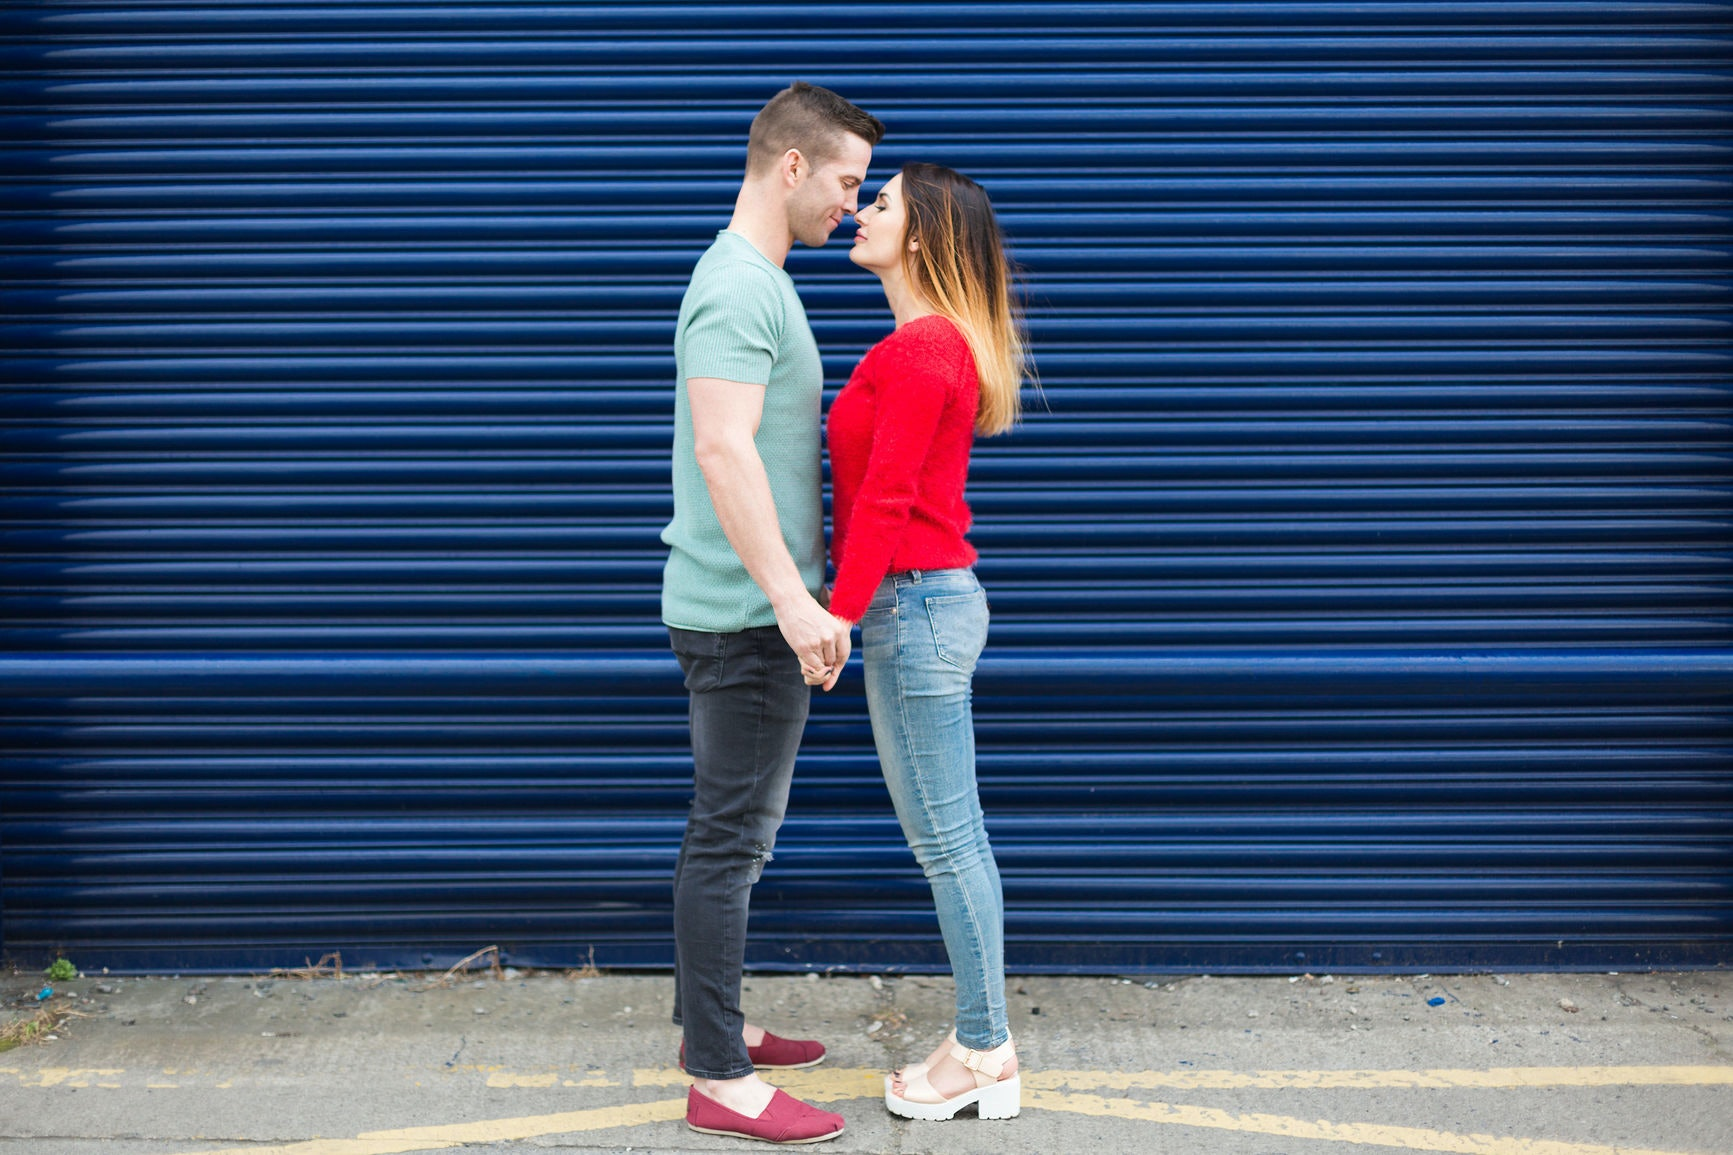 Dating early 20s how to